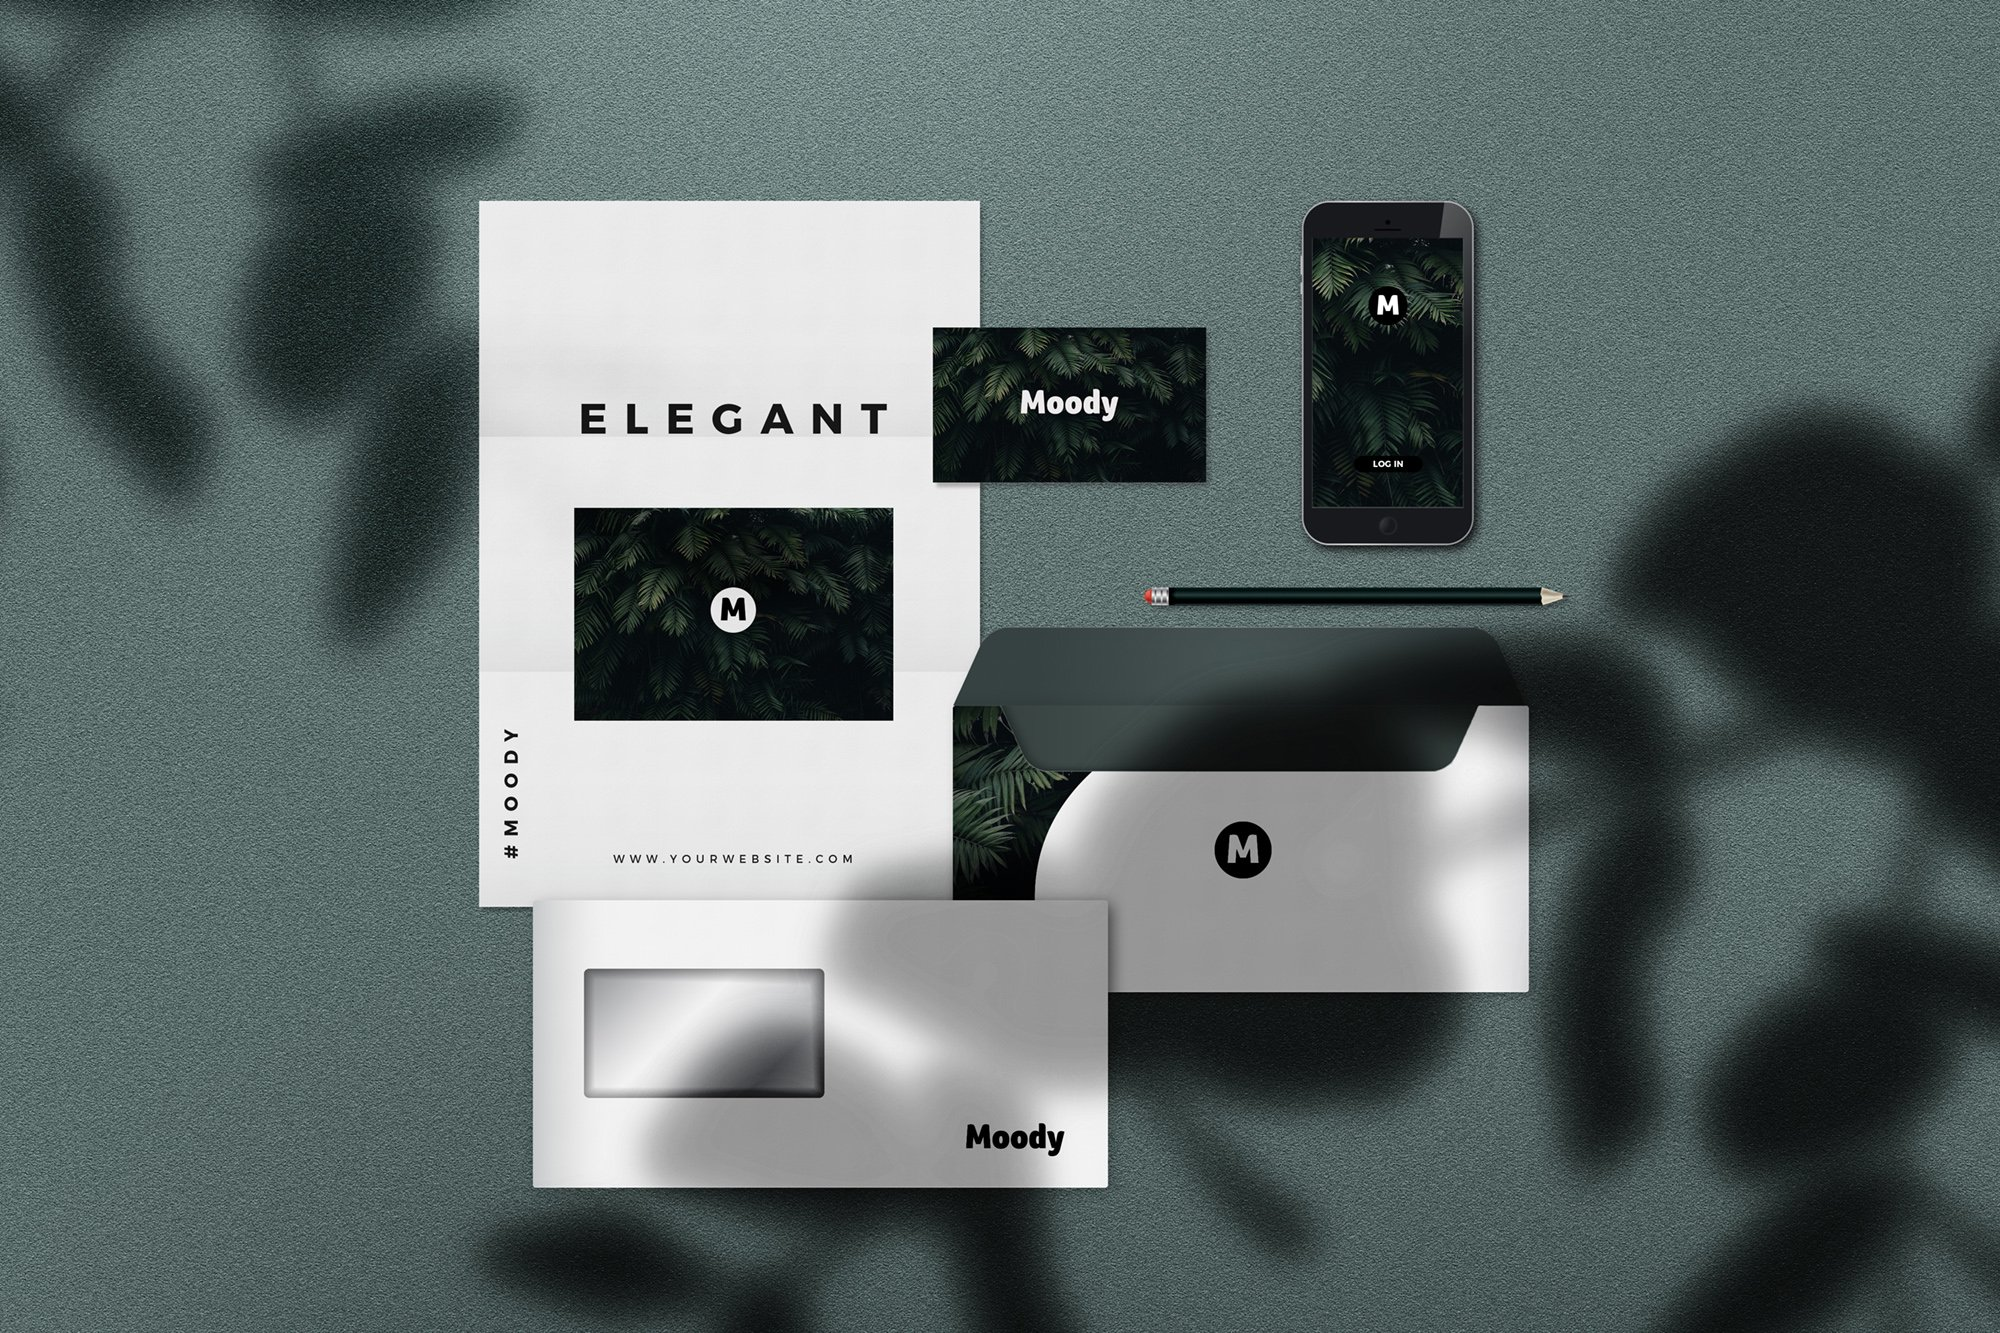 深色系品牌设计提案展示样机 elements 8 identity stationery mockups H98NAL